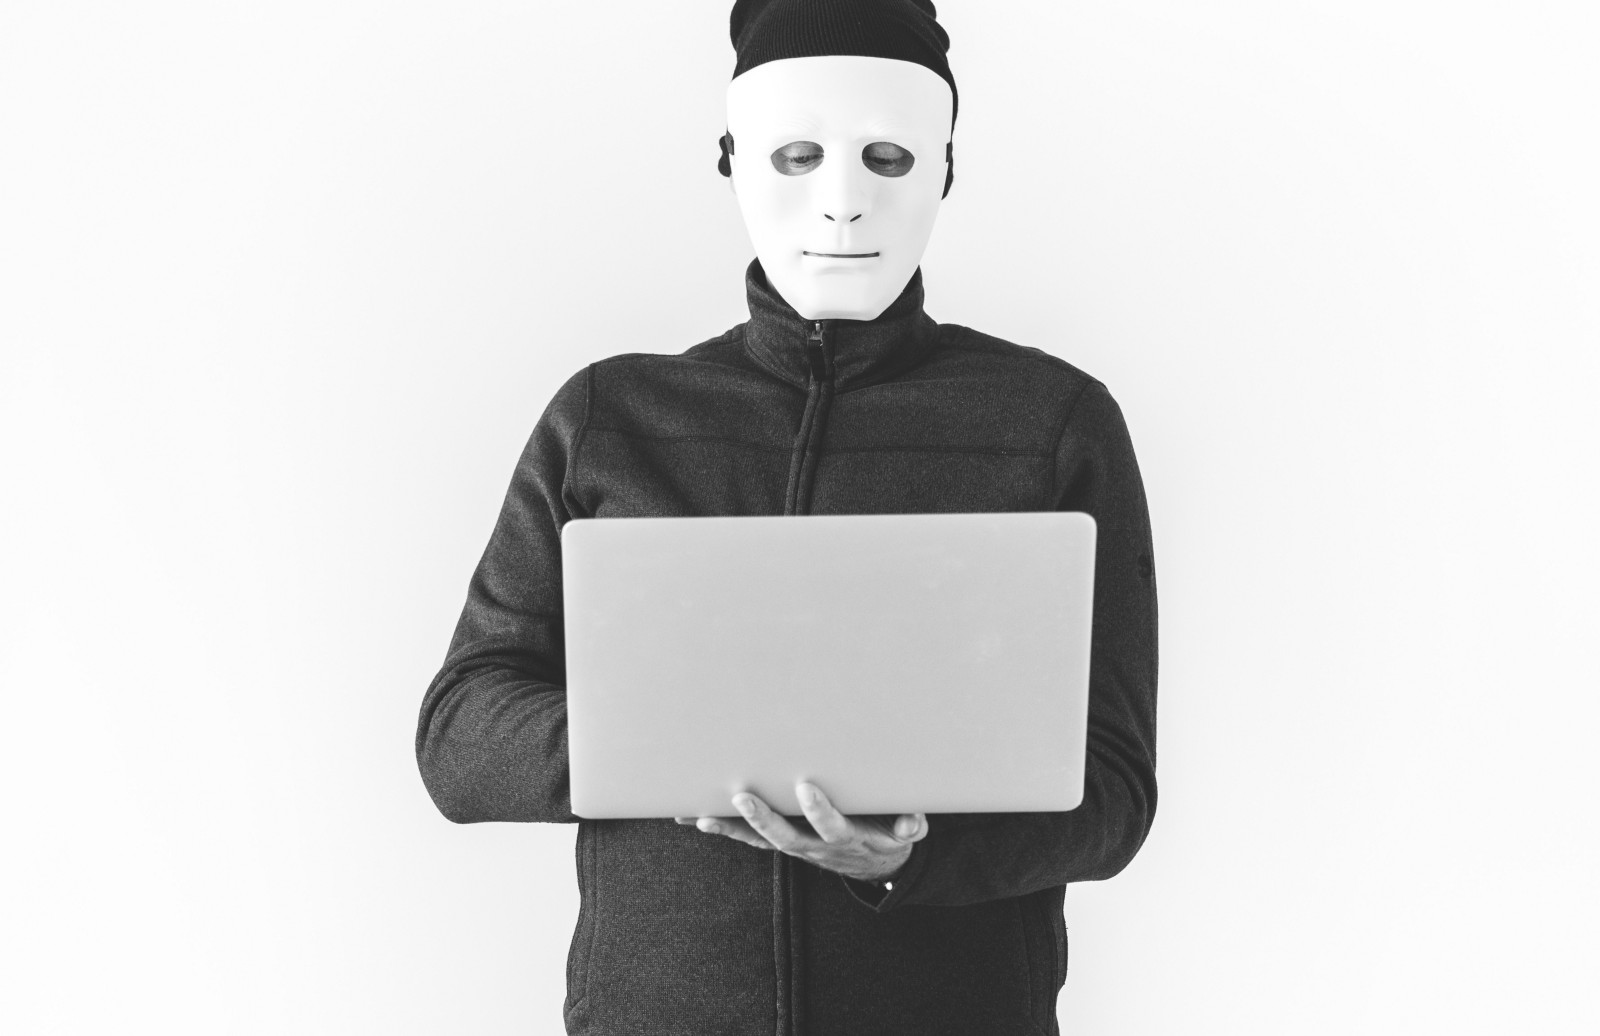 /a-guide-for-protecting-yourself-from-identity-theft-84d332385193 feature image